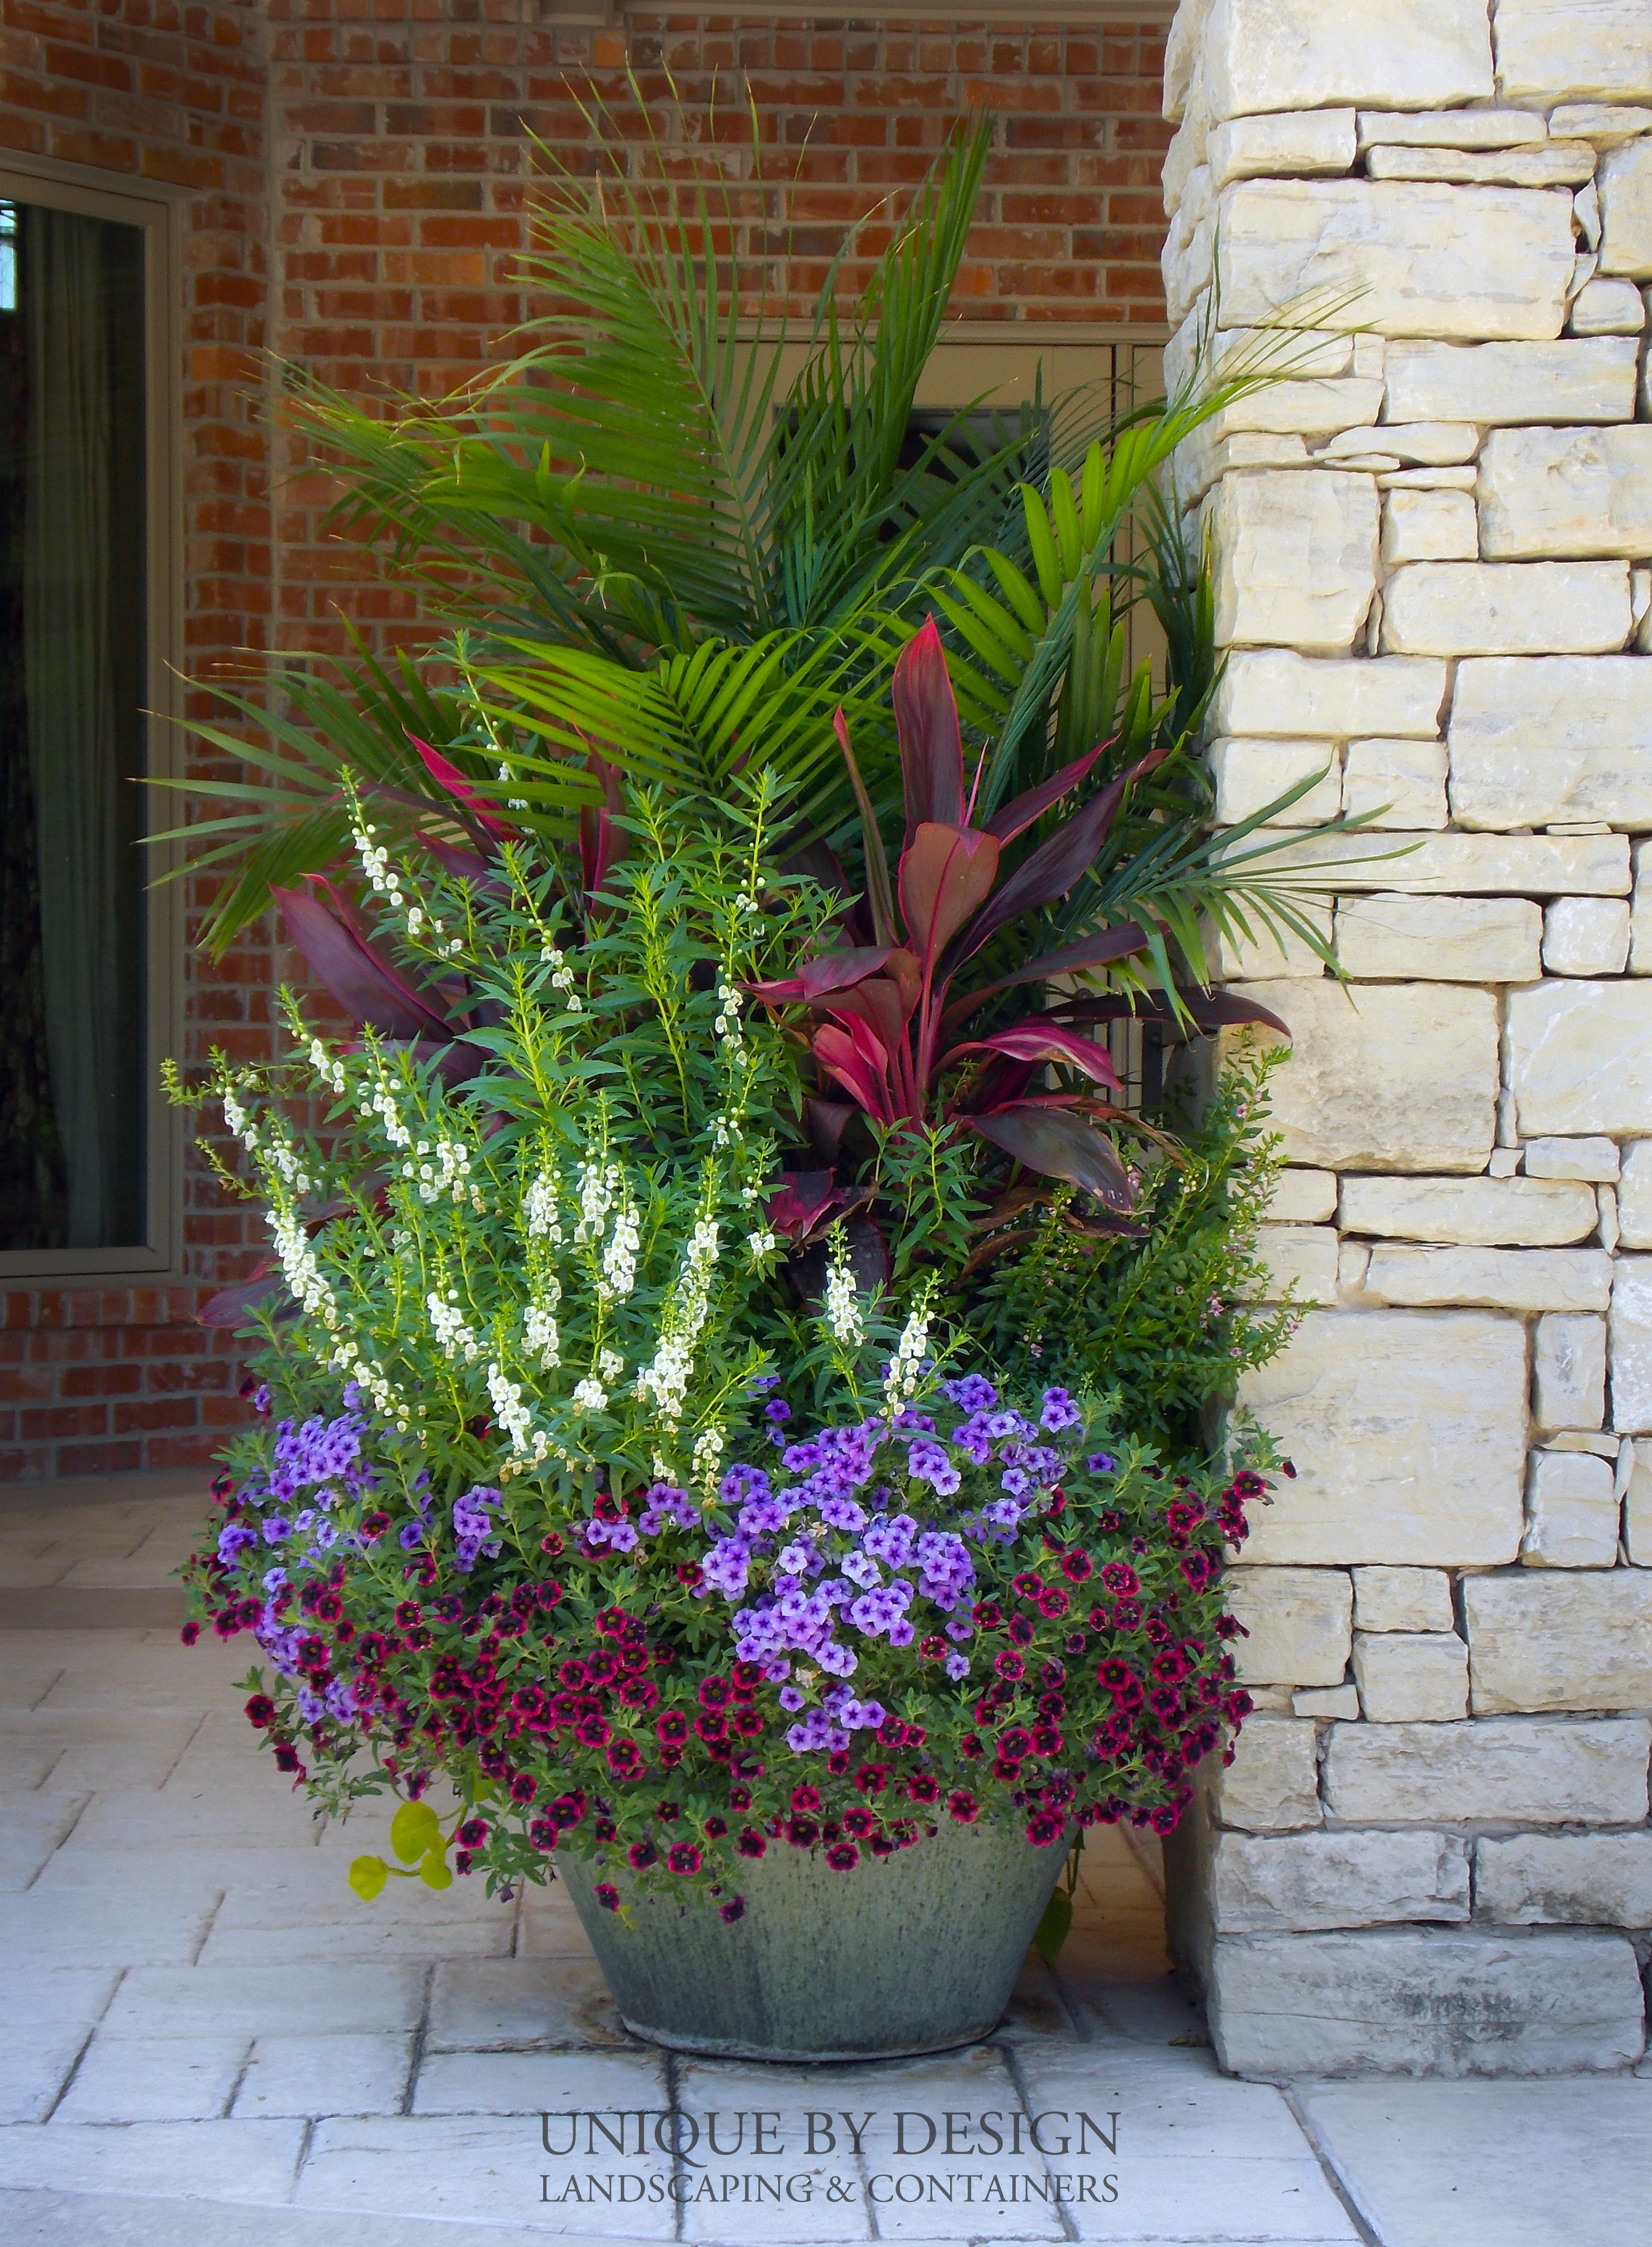 Unique Outdoor Flower Pots Unique By Design L Helen Weis Great Gardens Ideas Pinterest